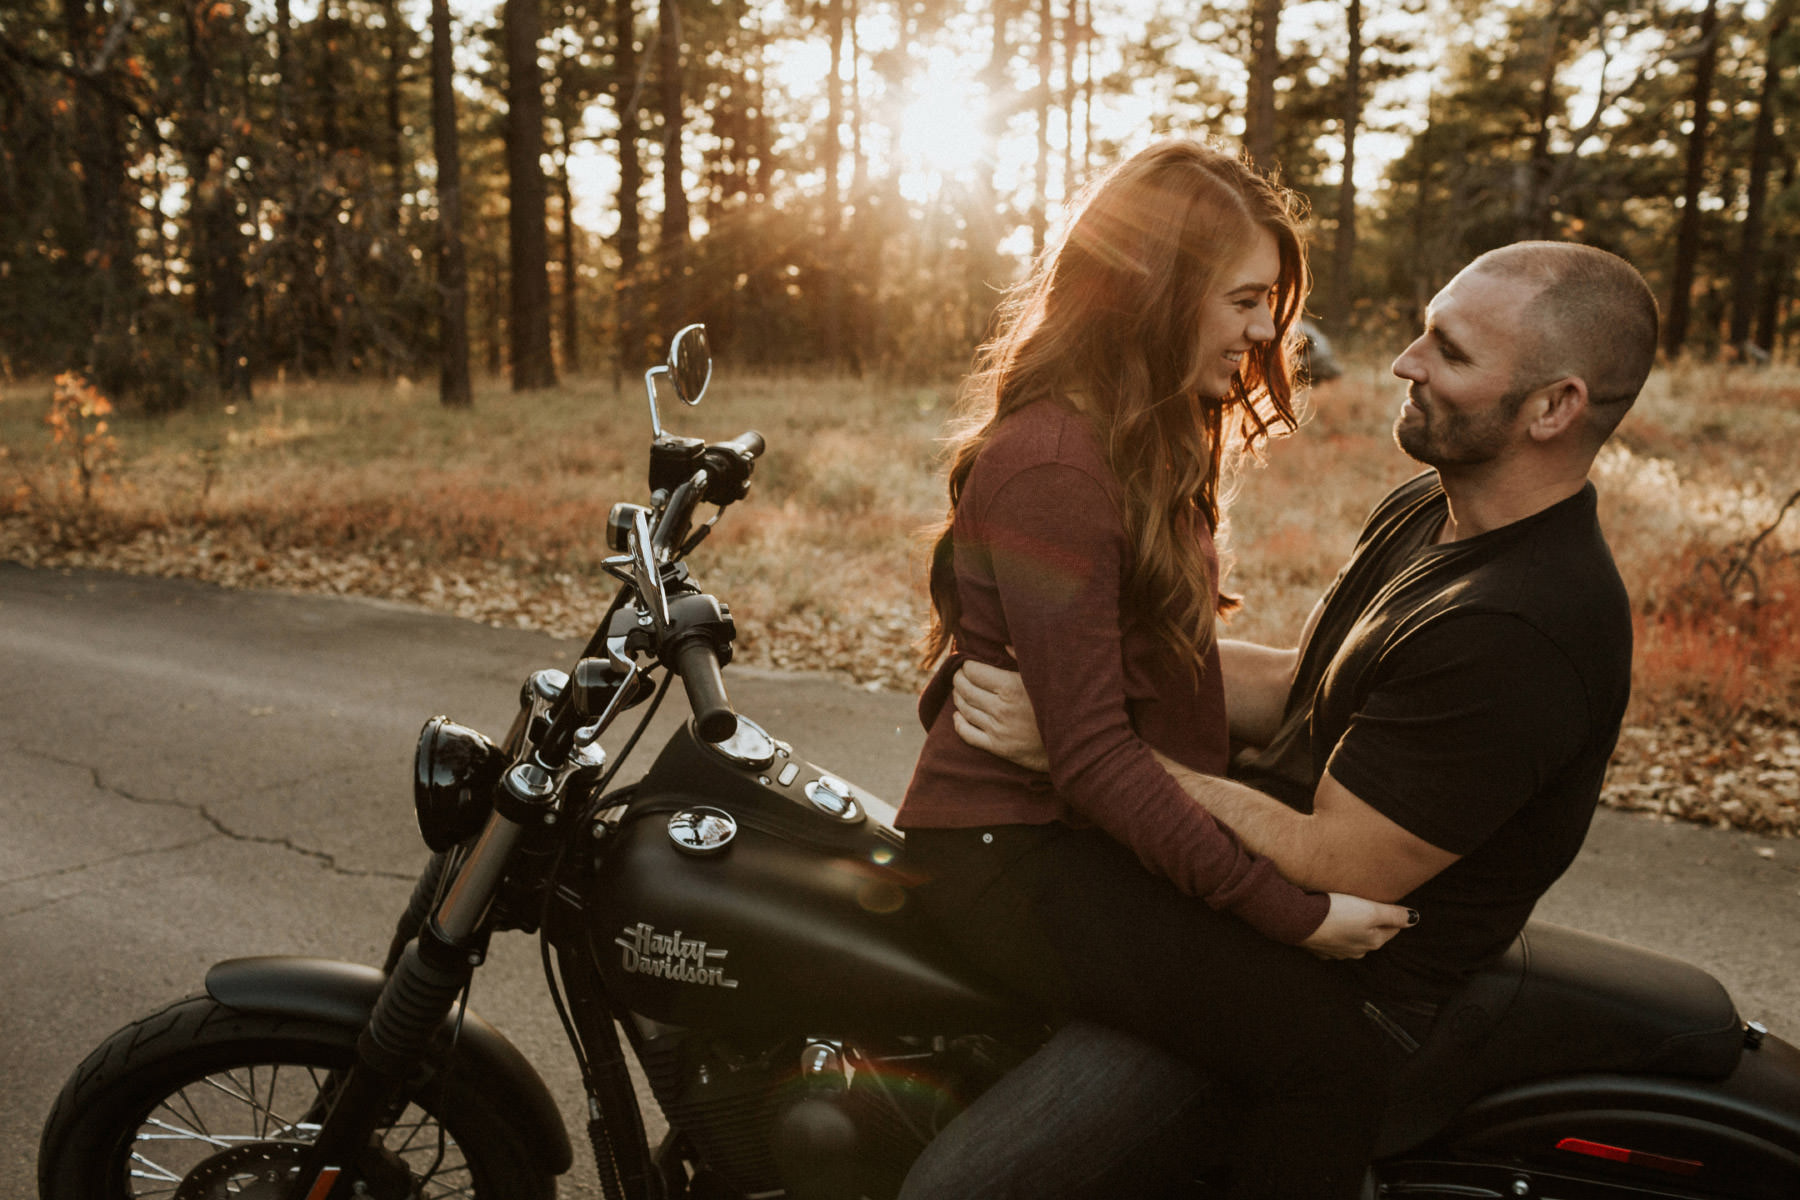 Couple stradling on a motorcycle